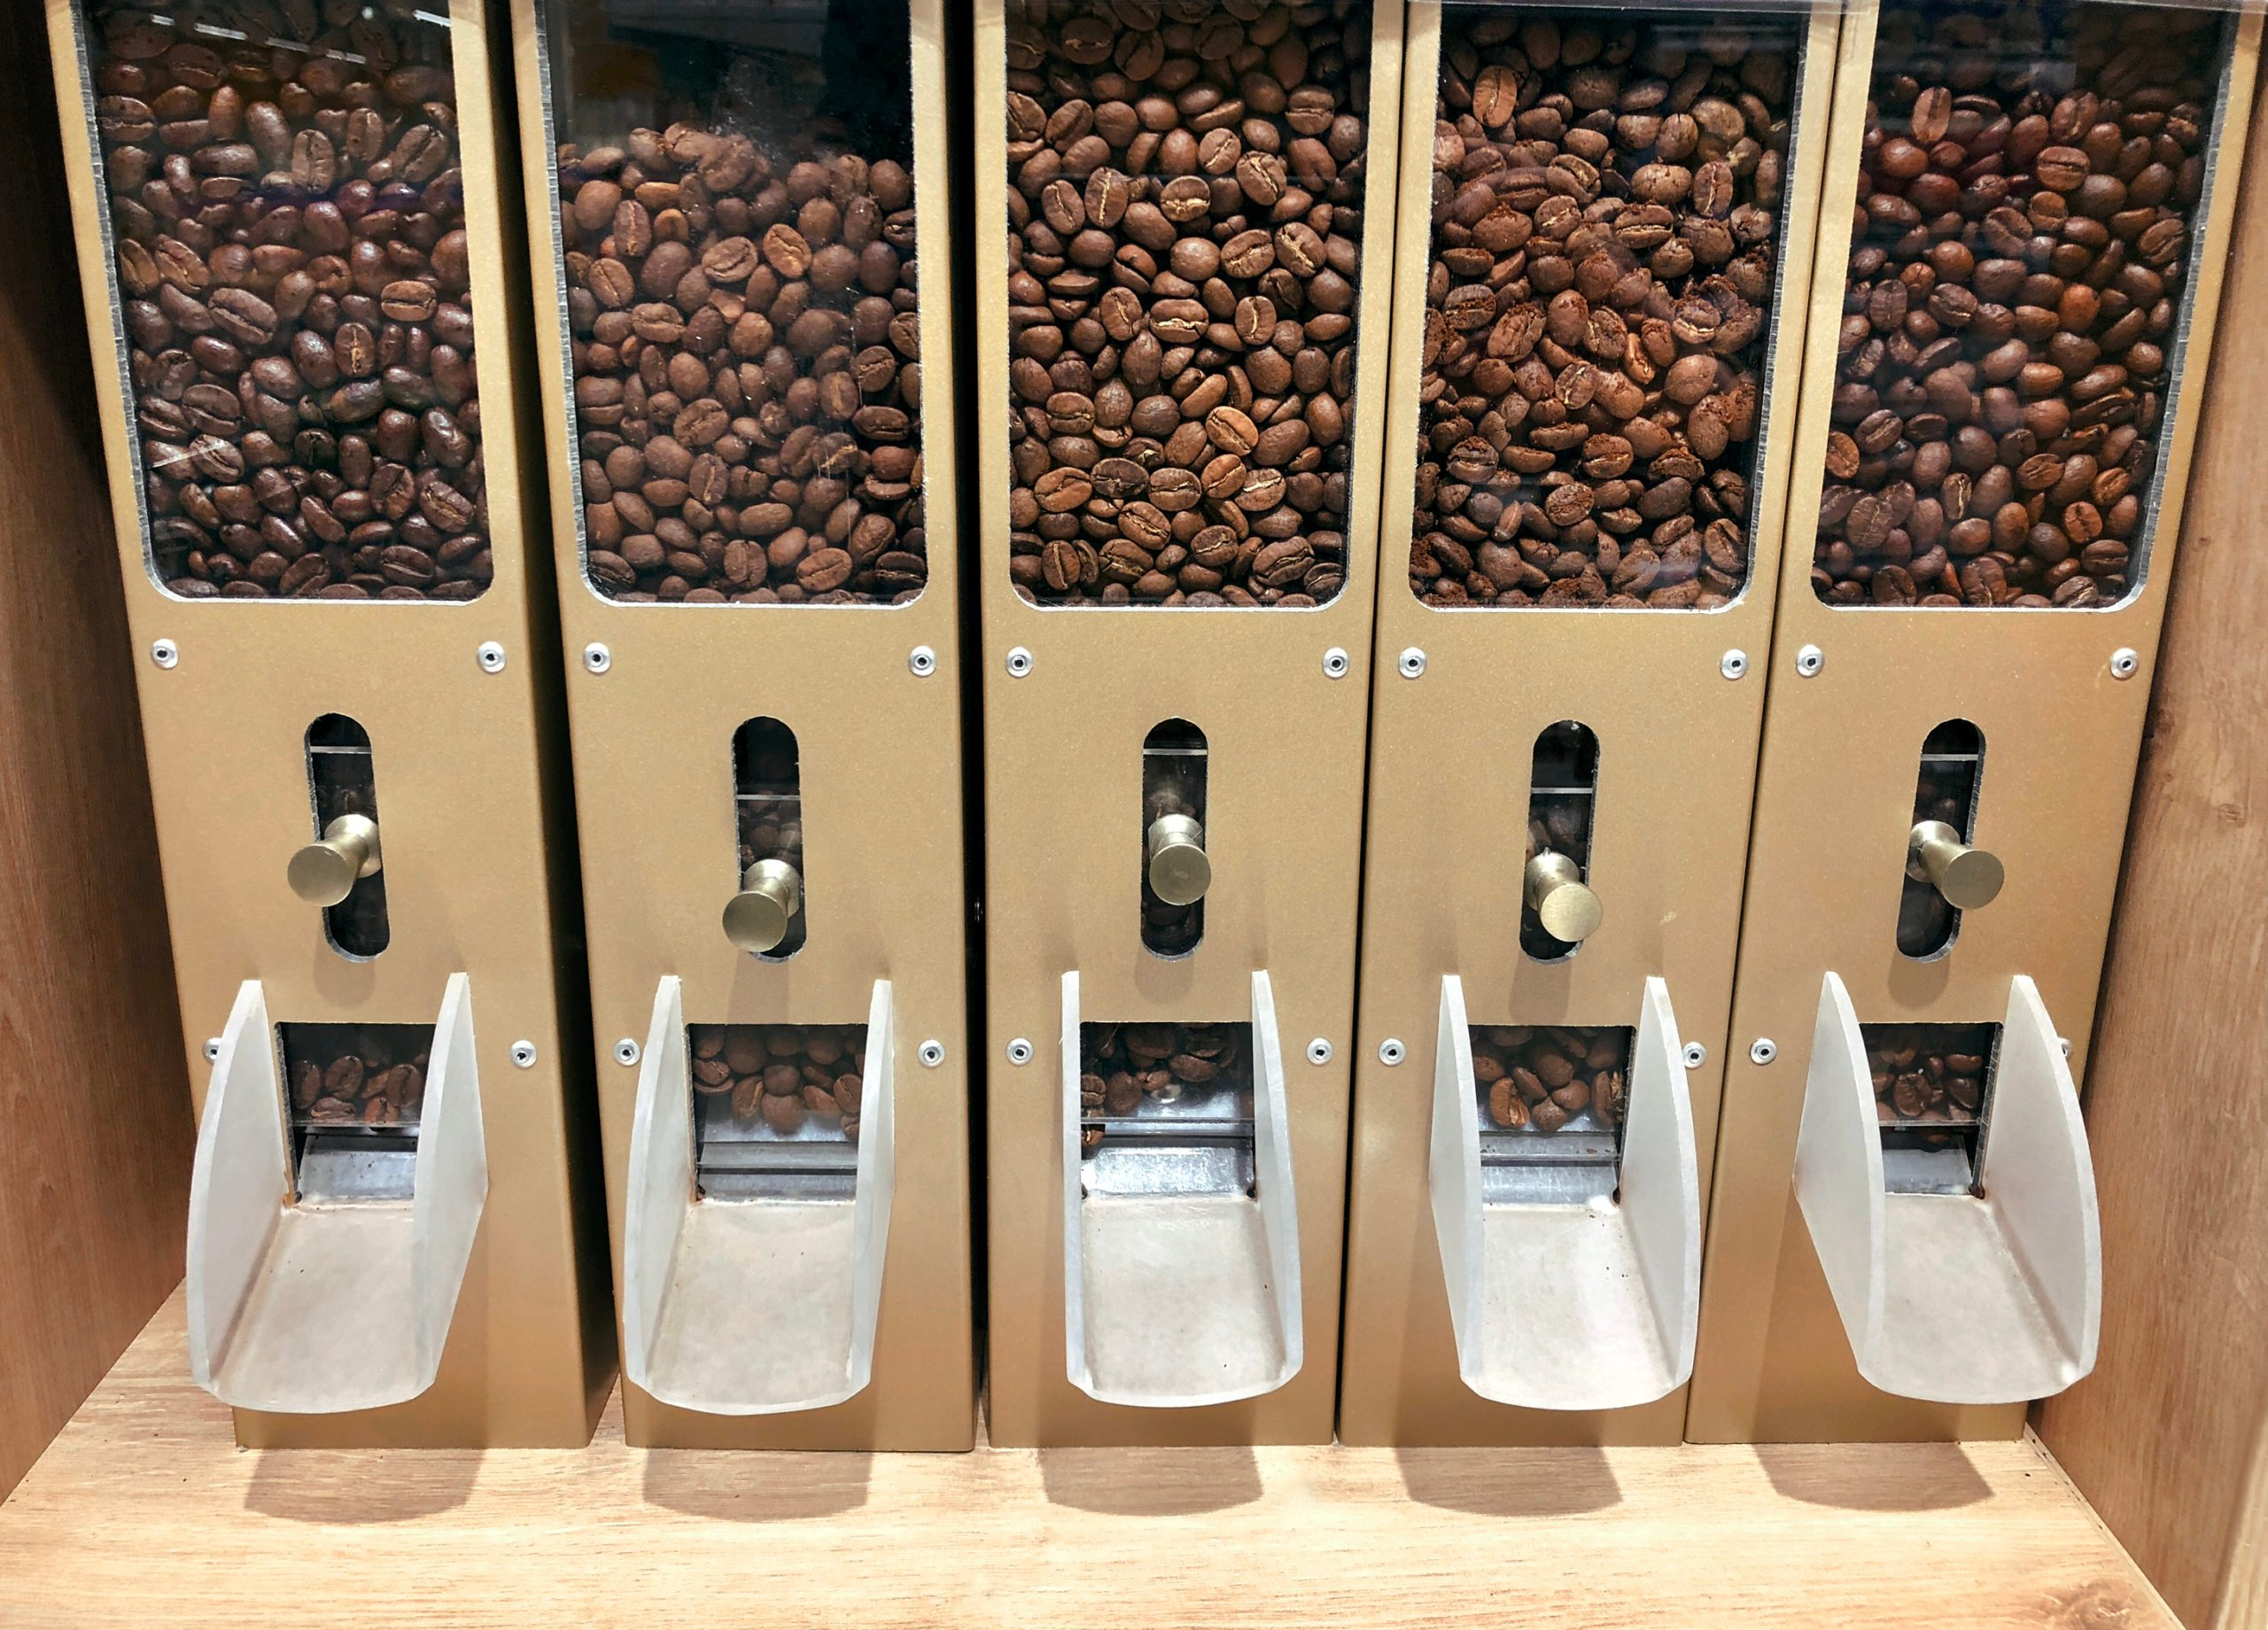 Coffee beans in containers dispensers for self-service in supermarket